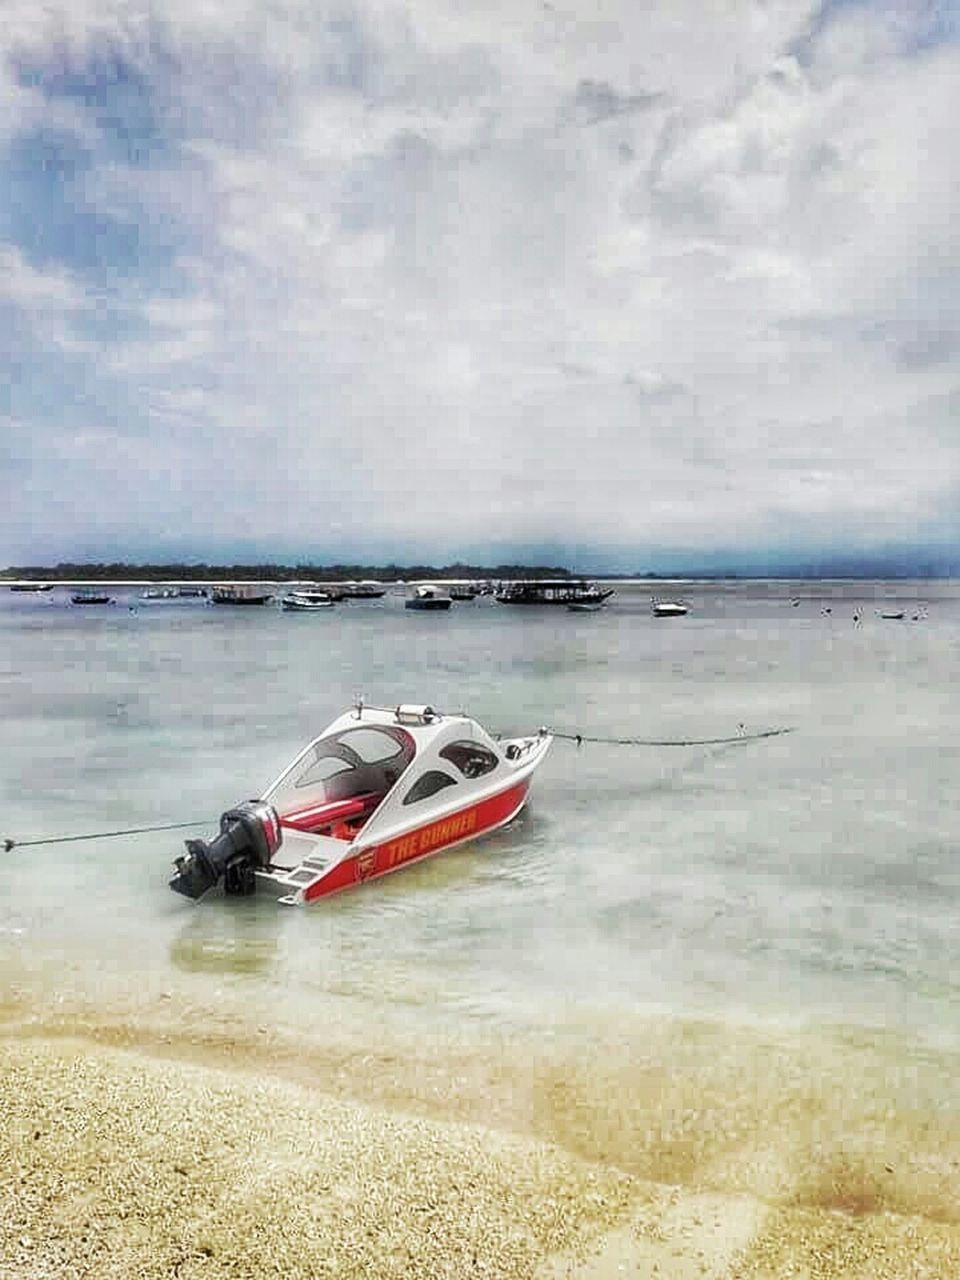 water, sea, beach, cloud - sky, transportation, nautical vessel, outdoors, sky, day, nature, horizon over water, moored, red, sport, no people, jet boat